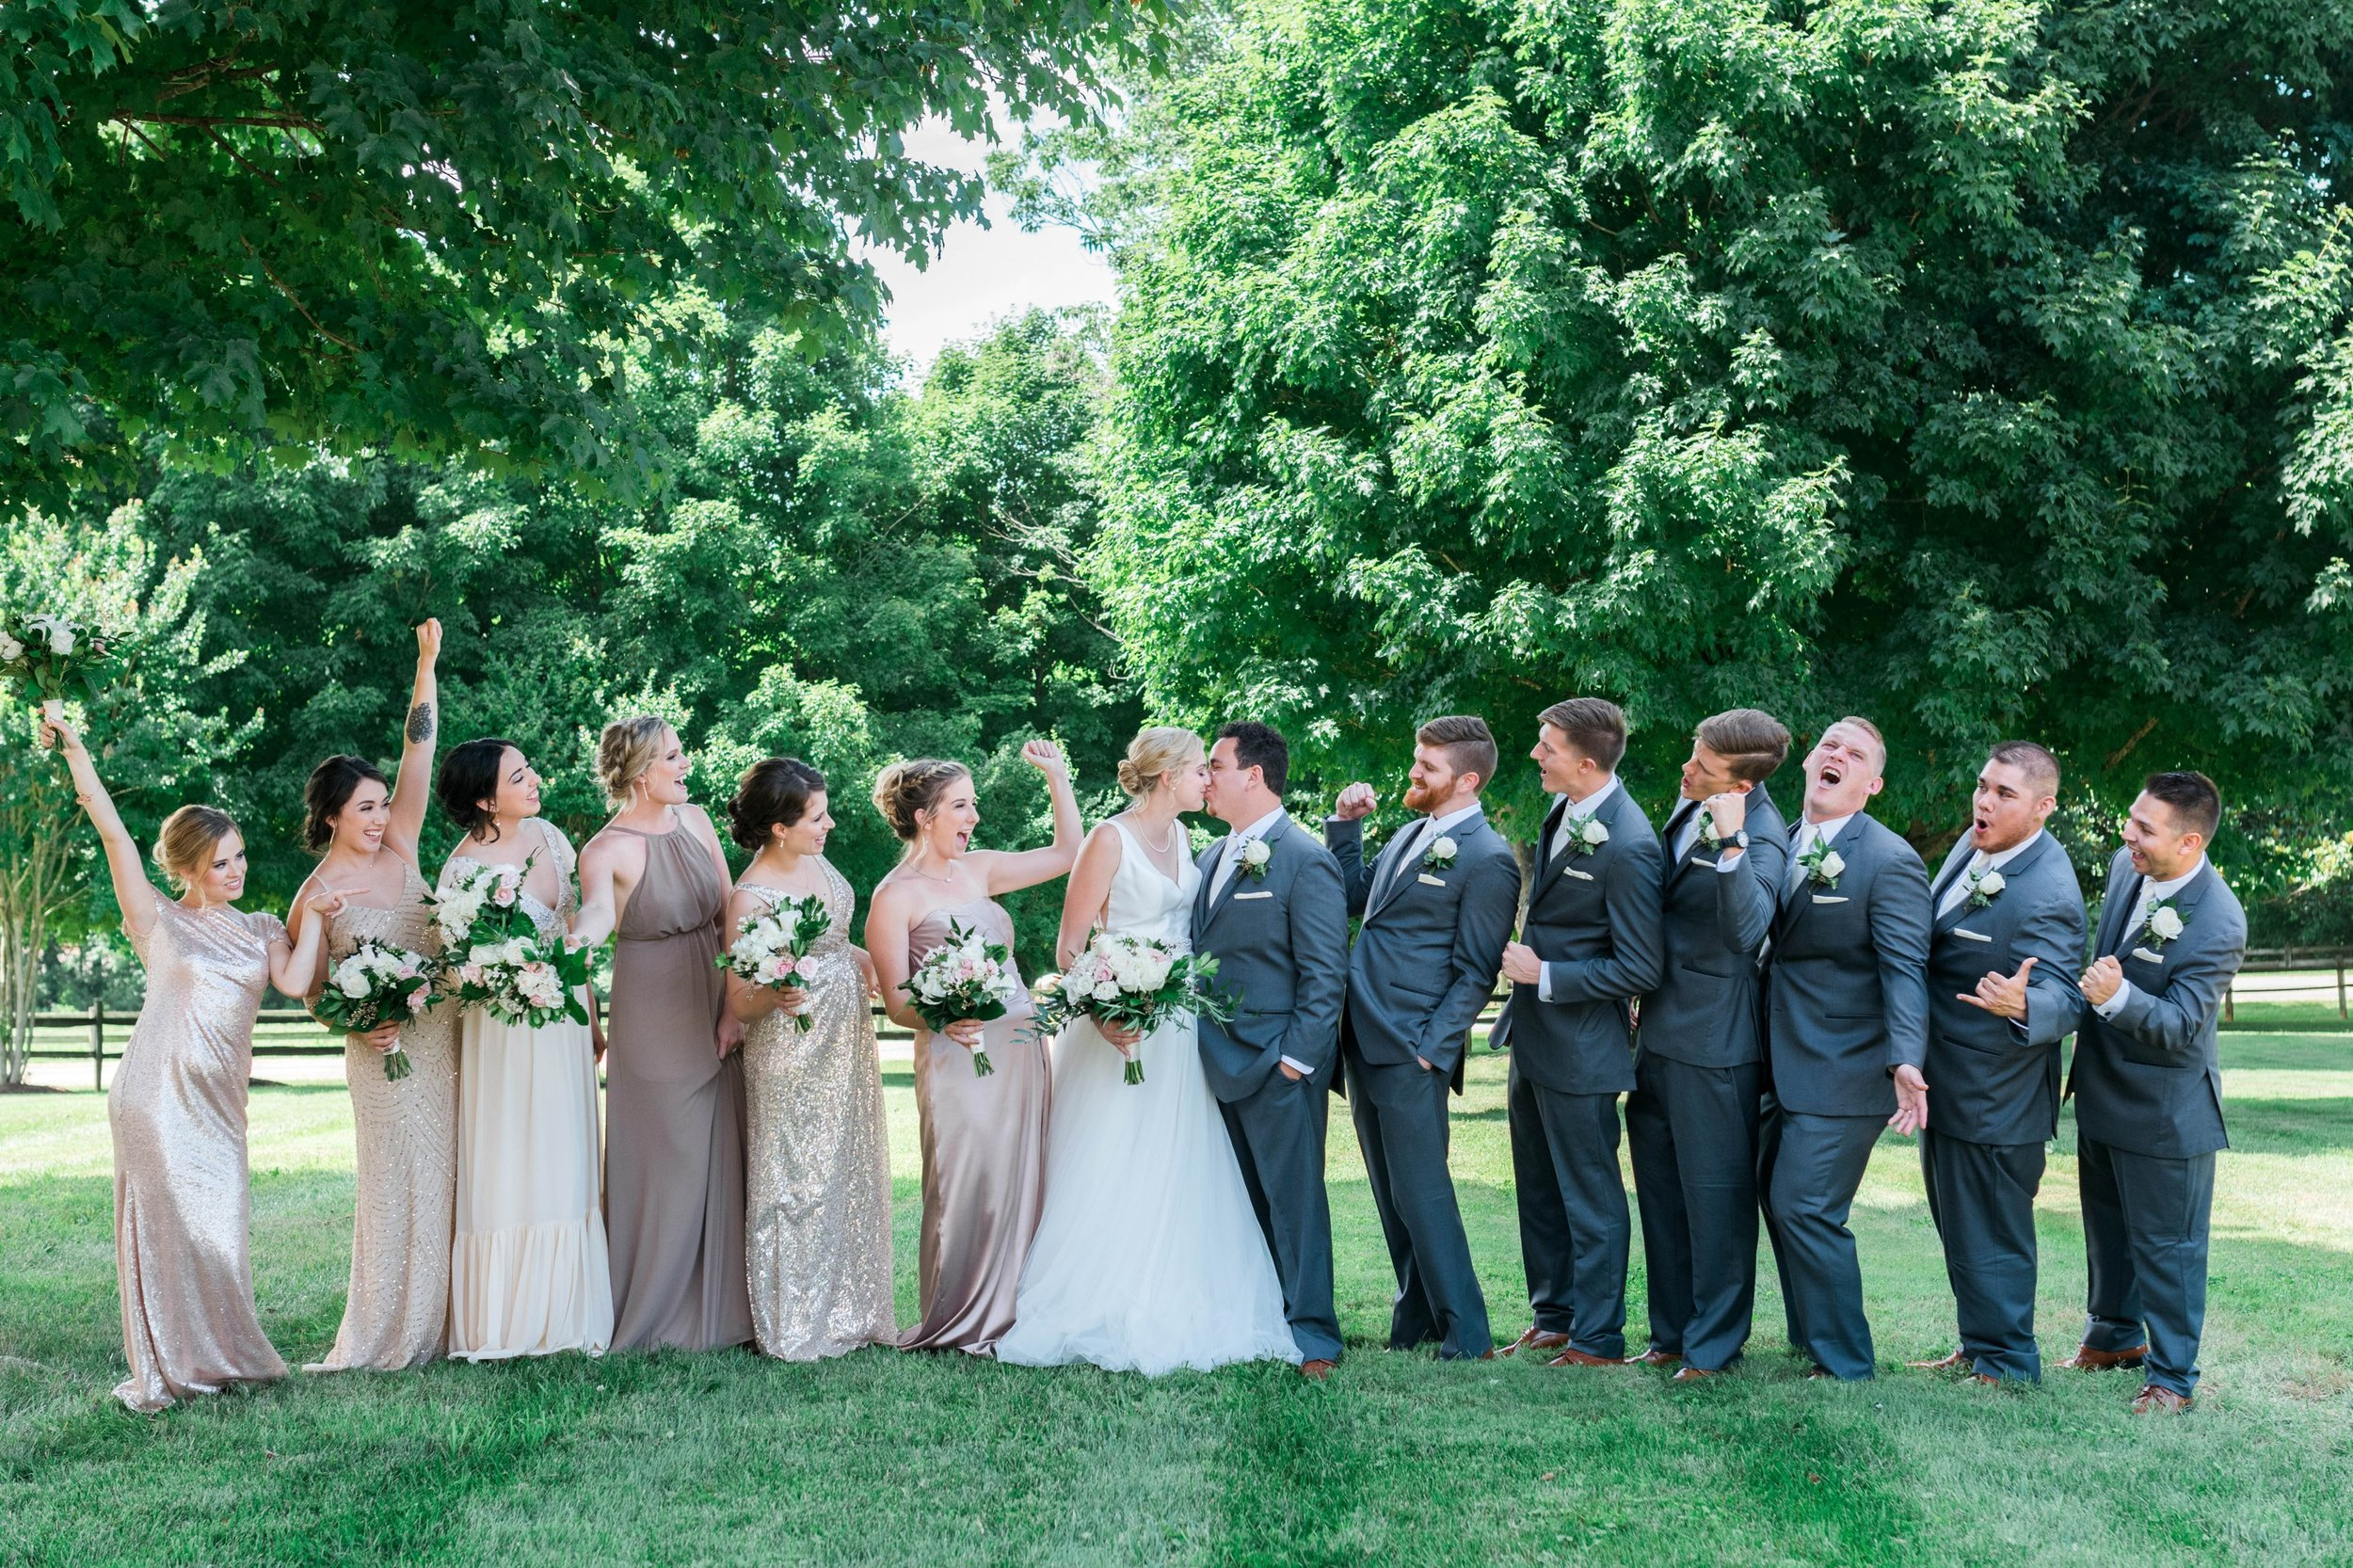 westmanorestate_entwinedevents_lynchburgweddingphotographer_Virginiaweddingphotographer_kateyam 45.jpg